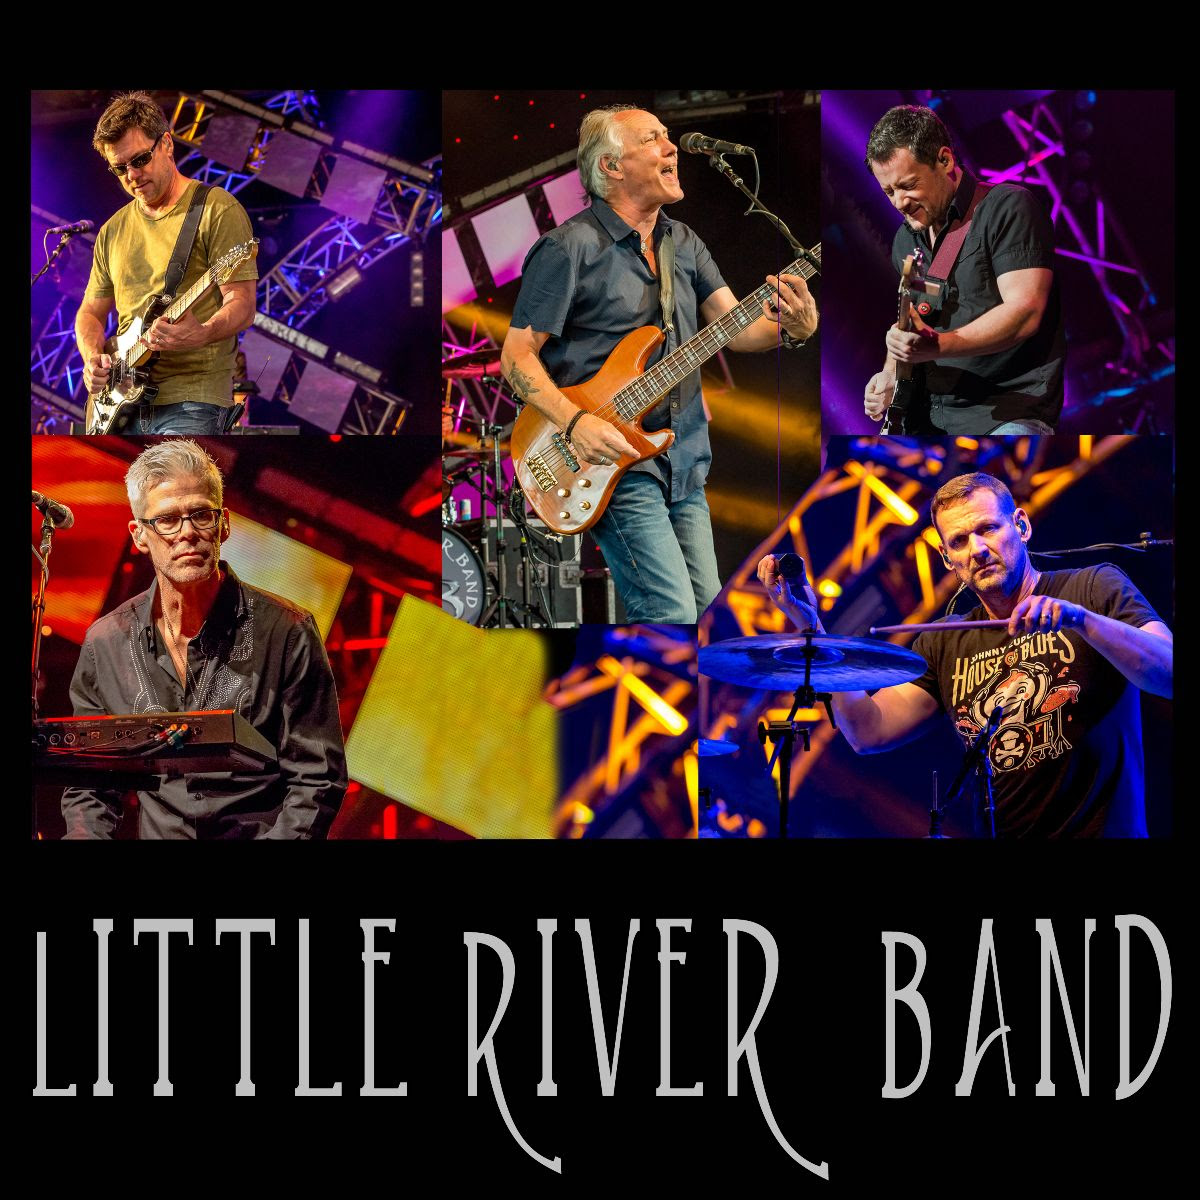 unnamed - Little River Band Presented by Log Still Distillery